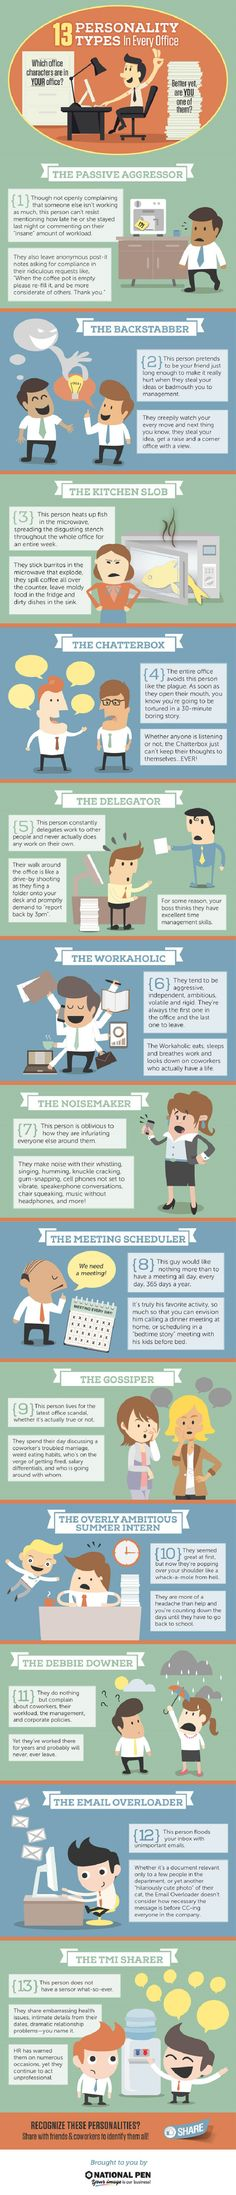 13 Personality types in every office  Which one are you?